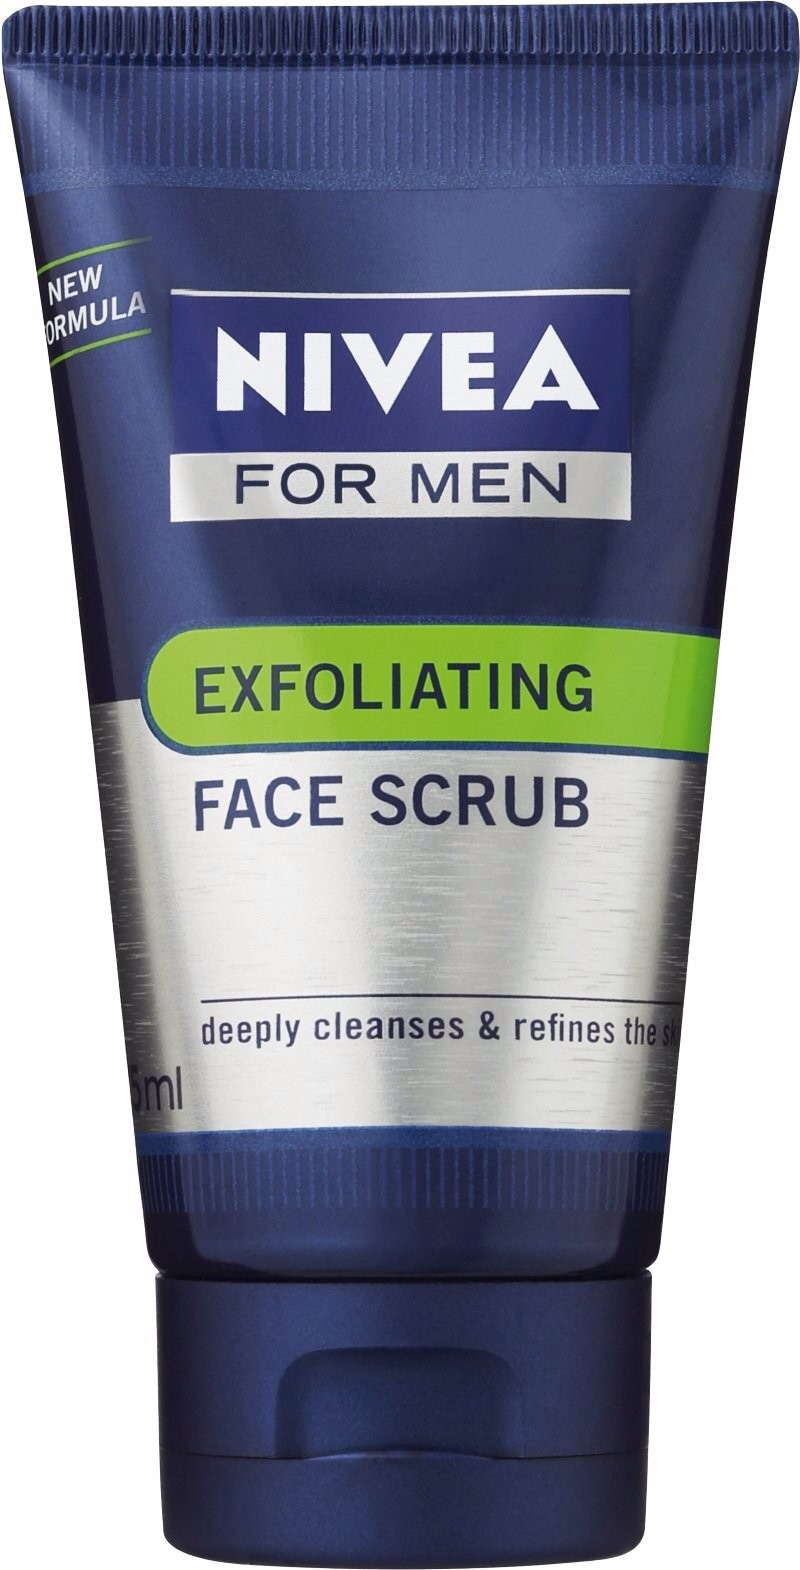 And (for men) Exfoliating Face Scrub